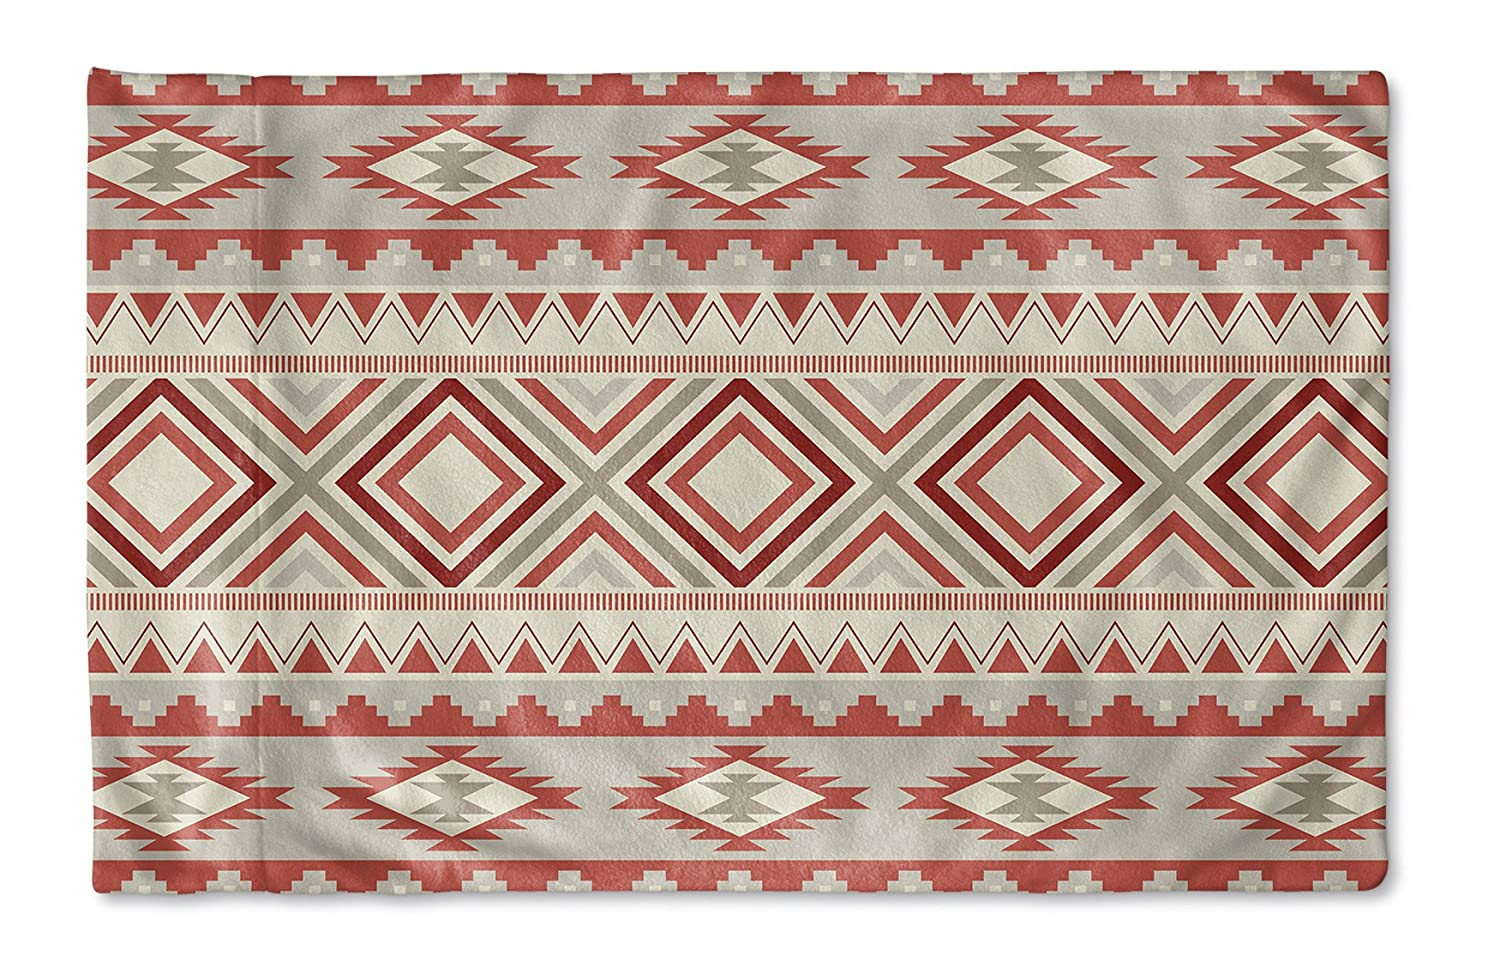 KAVKA Designs Navajo Red Pillow Case, MGTAVC2014PC32 Red//Tan//Ivory Size: 30X20X1 - - NAVAJO Collection